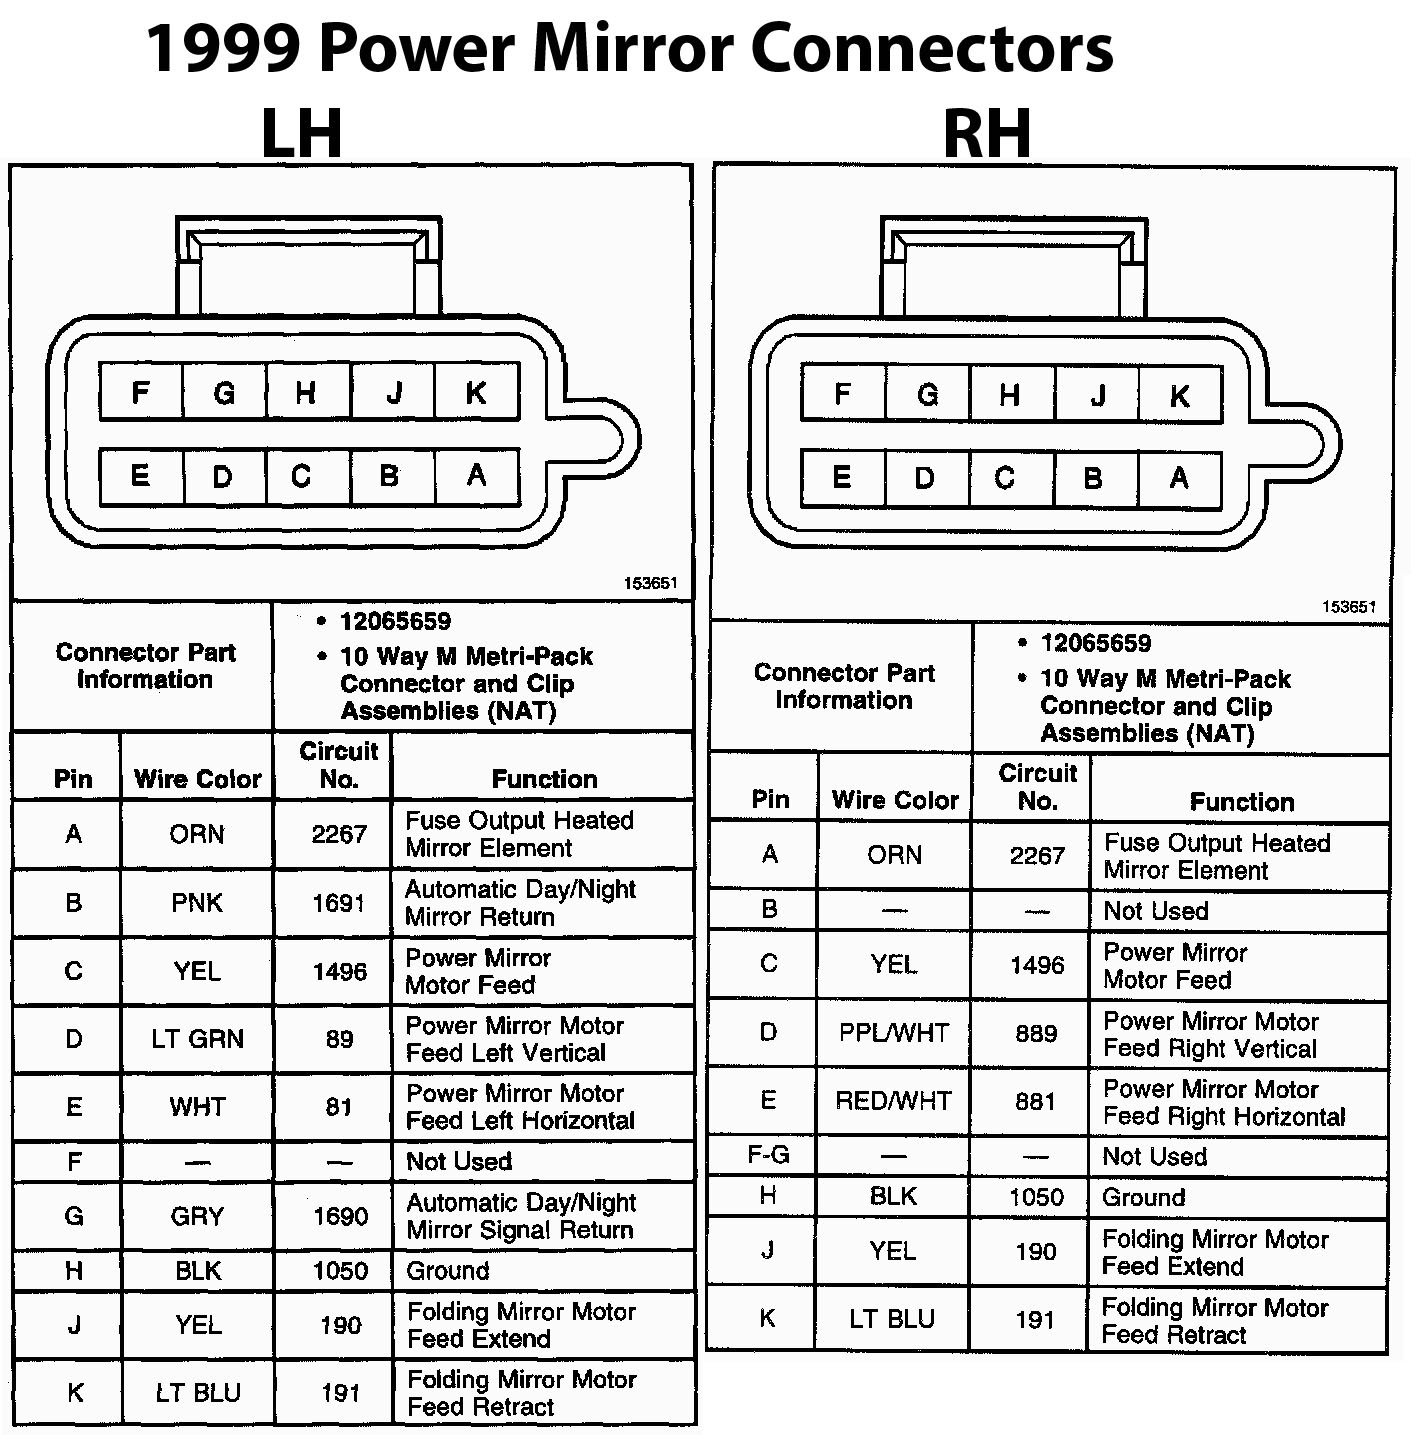 hight resolution of 99 chevy heated mirror diagram electrical work wiring diagram u2022 rh aglabs co 99 chevy 2500